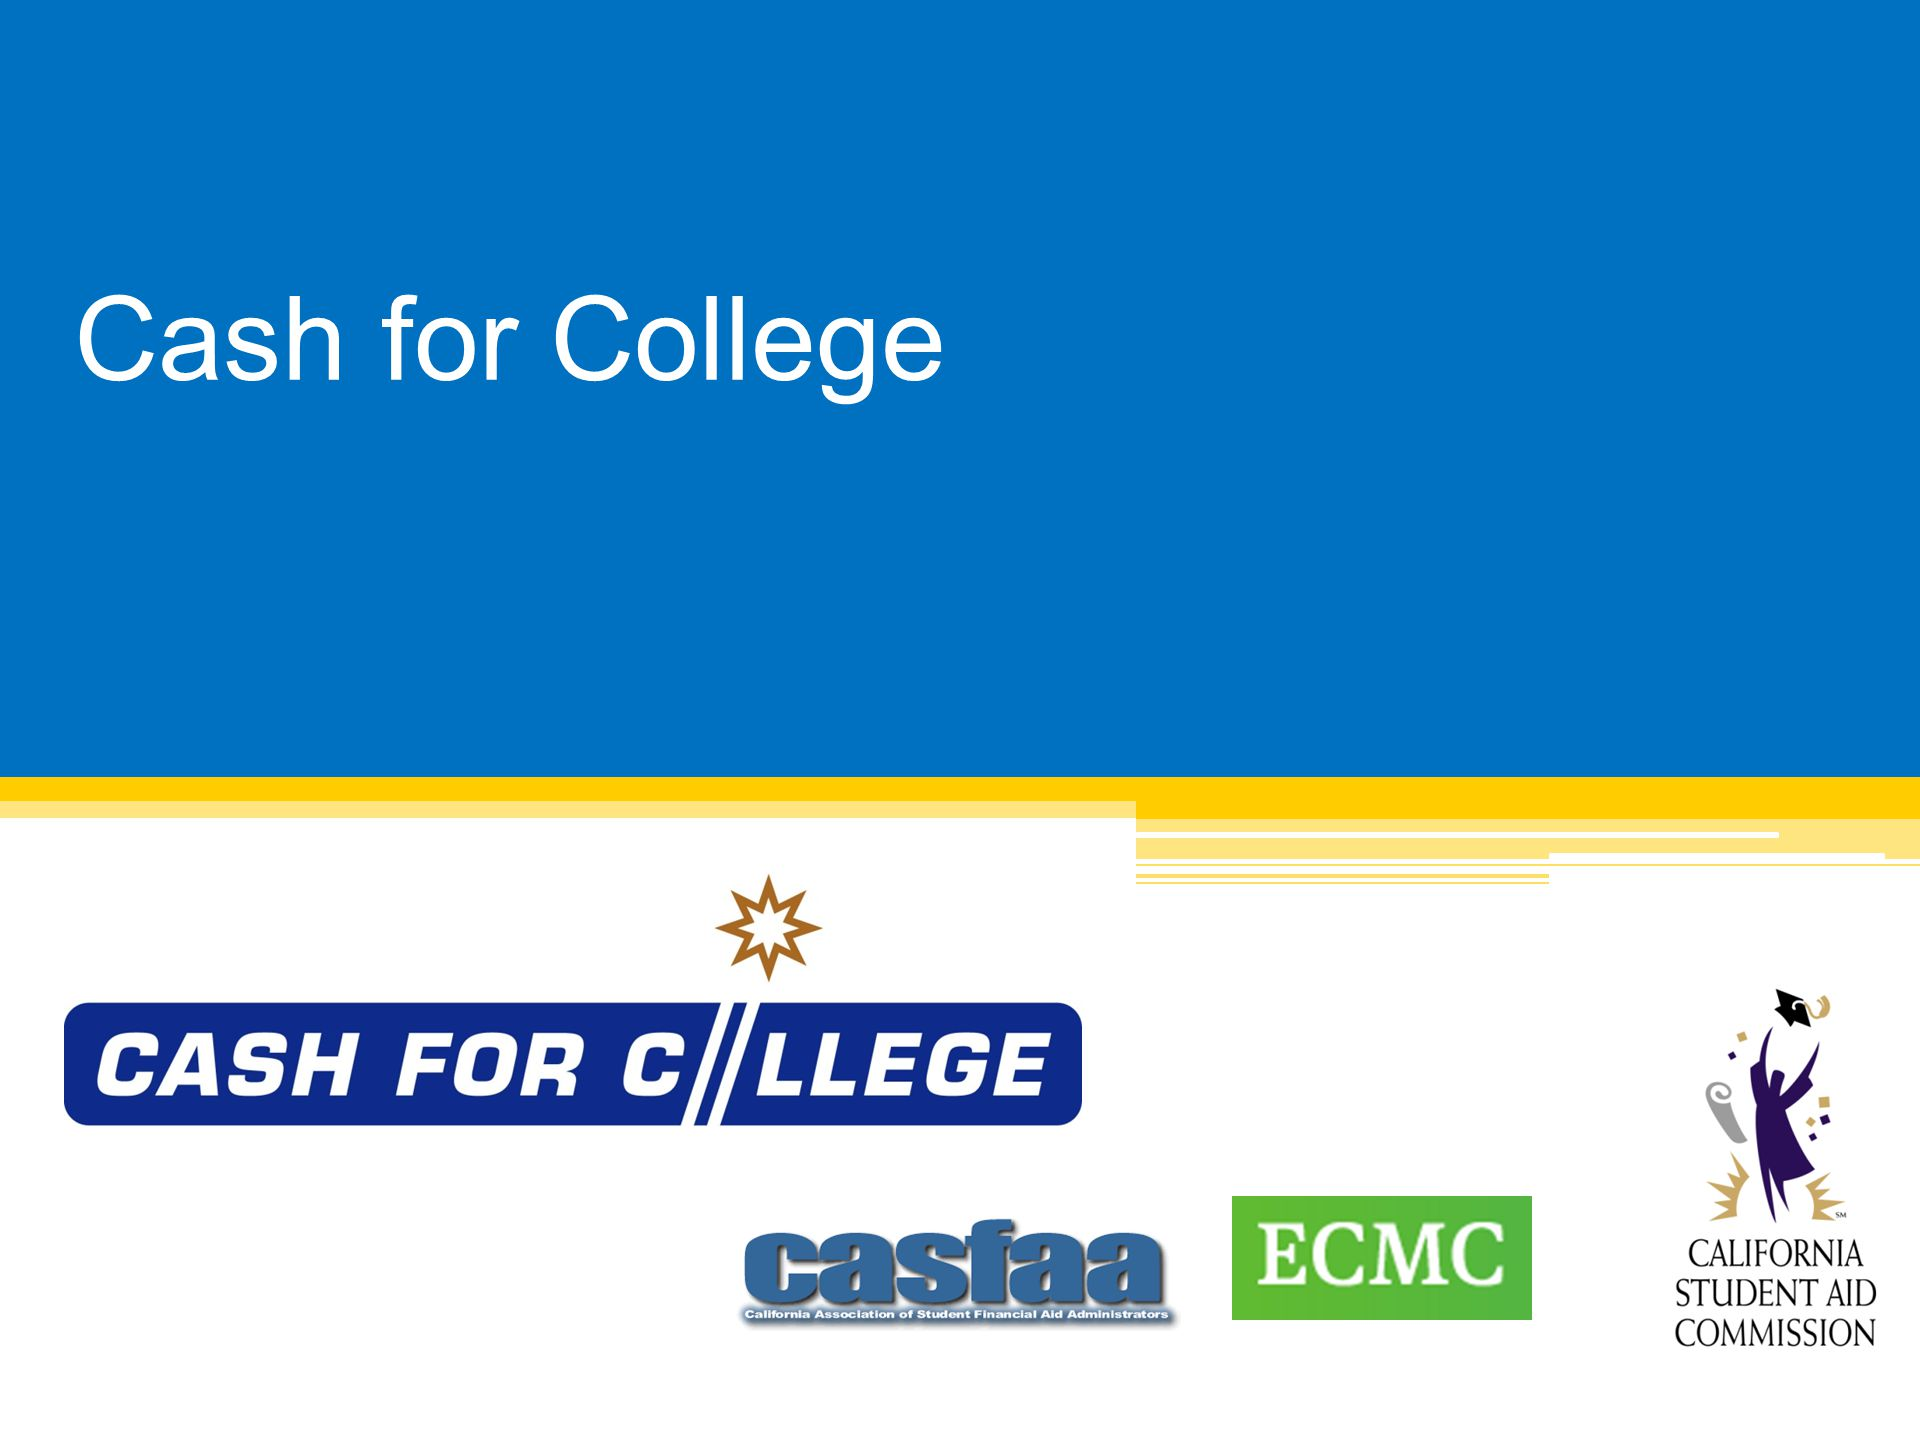 Cash for College